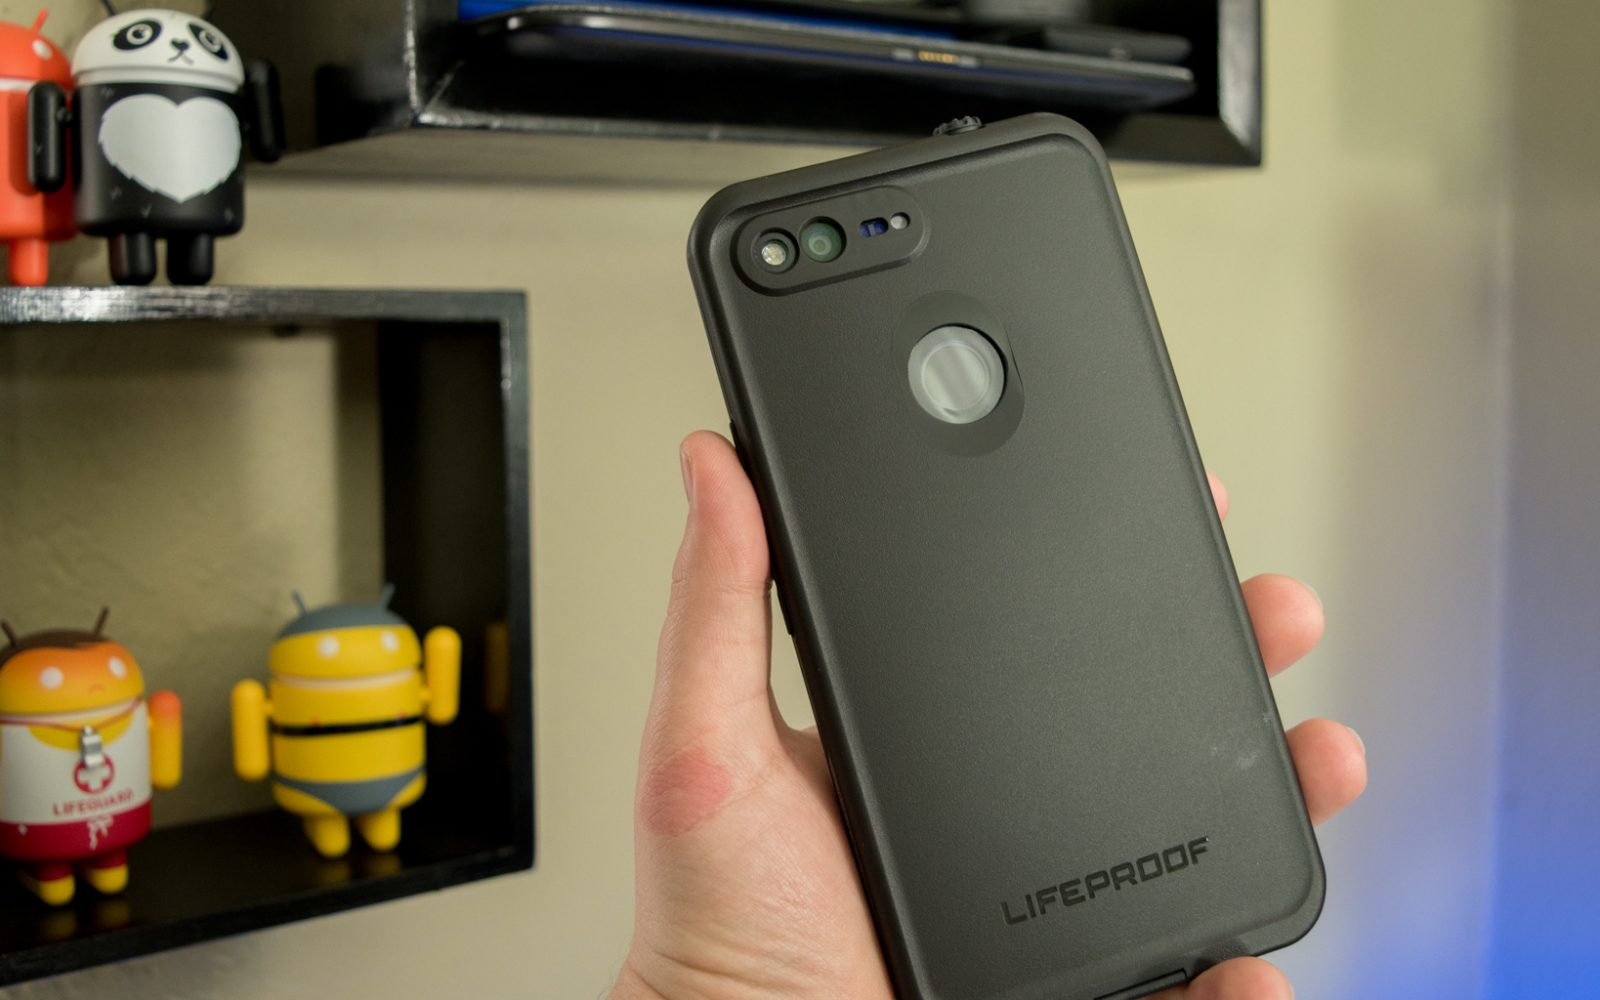 promo code b5351 0a181 Hands-on: The FRE LifeProof case is great for protecting your Google ...